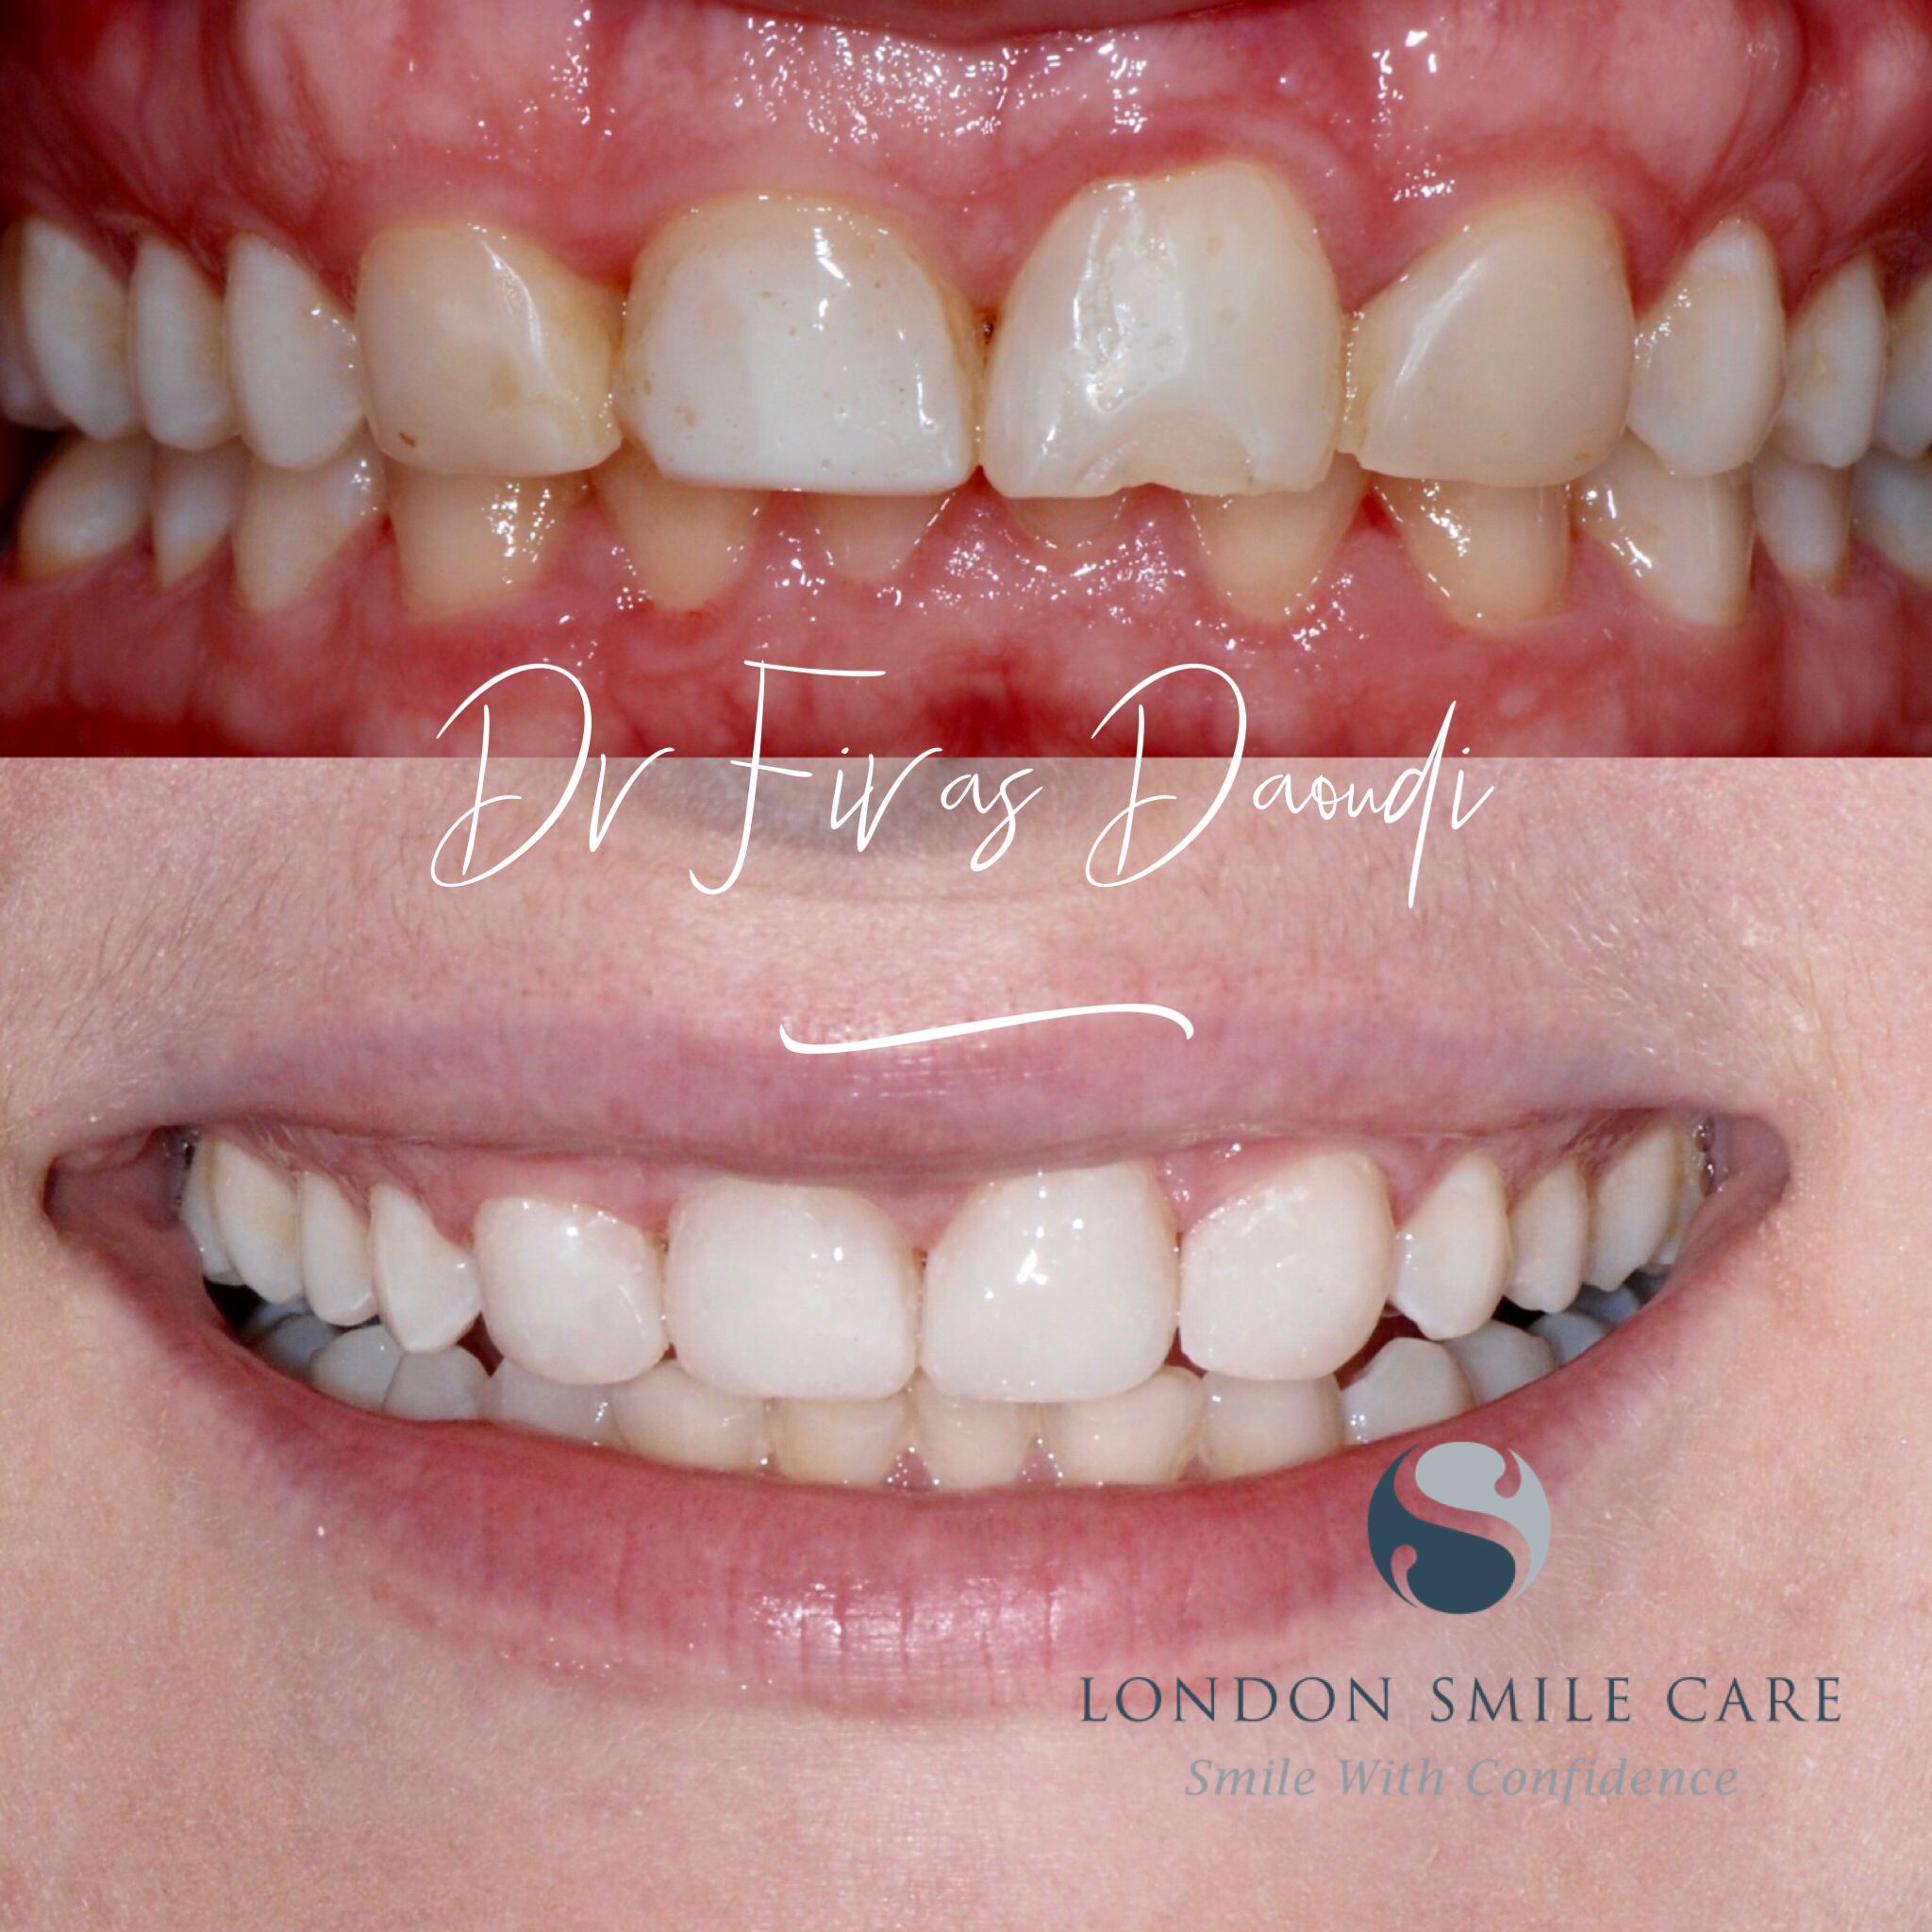 Cosmetic Dental Treatments To Improve Your Smile